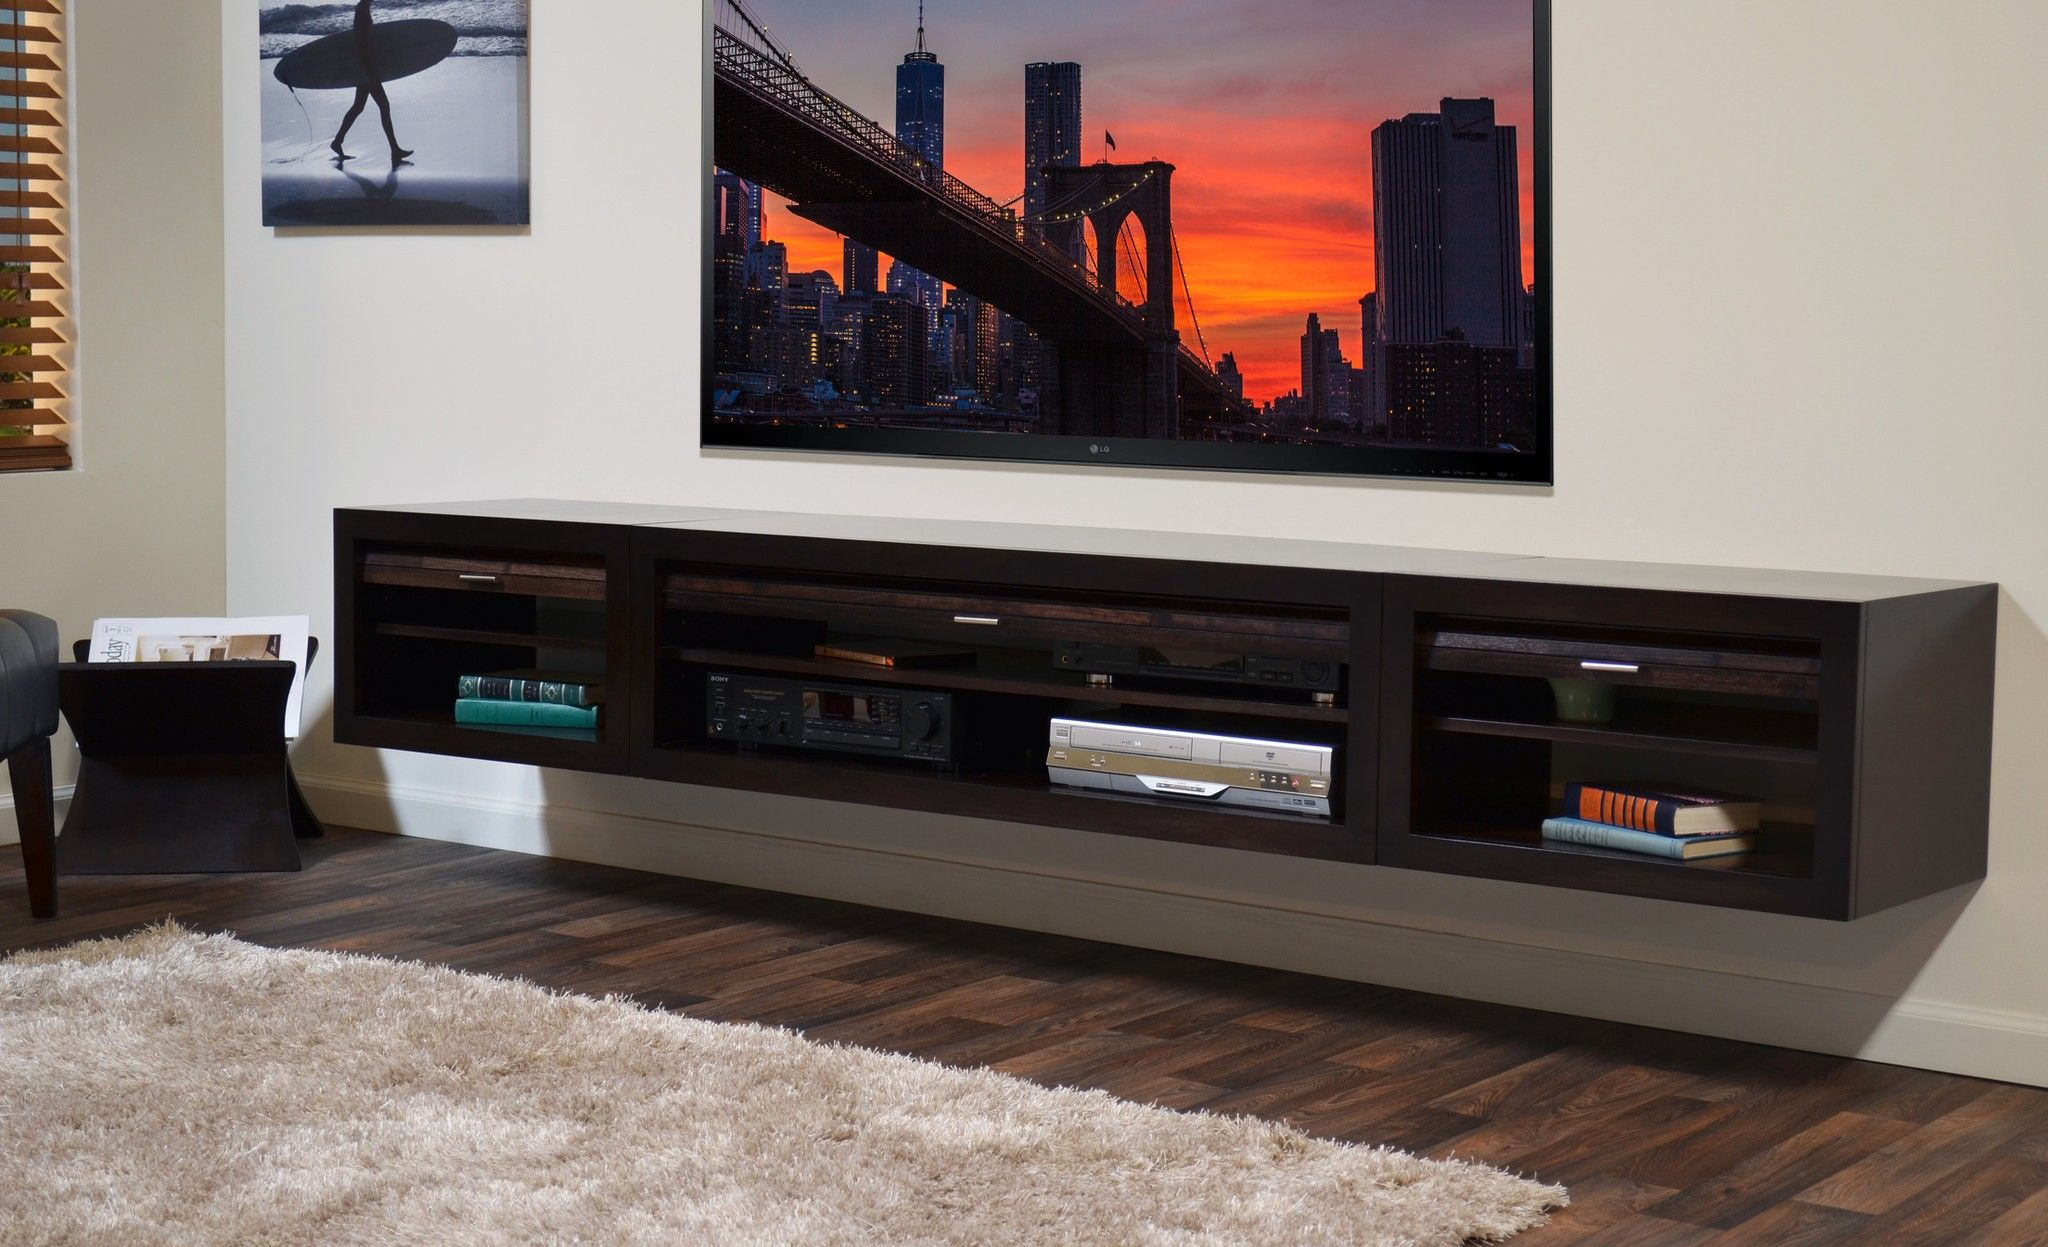 Great Rectangle Black Solid Wood Floating Entertainment Shelves Under ... Mount  TvTv Wall ...